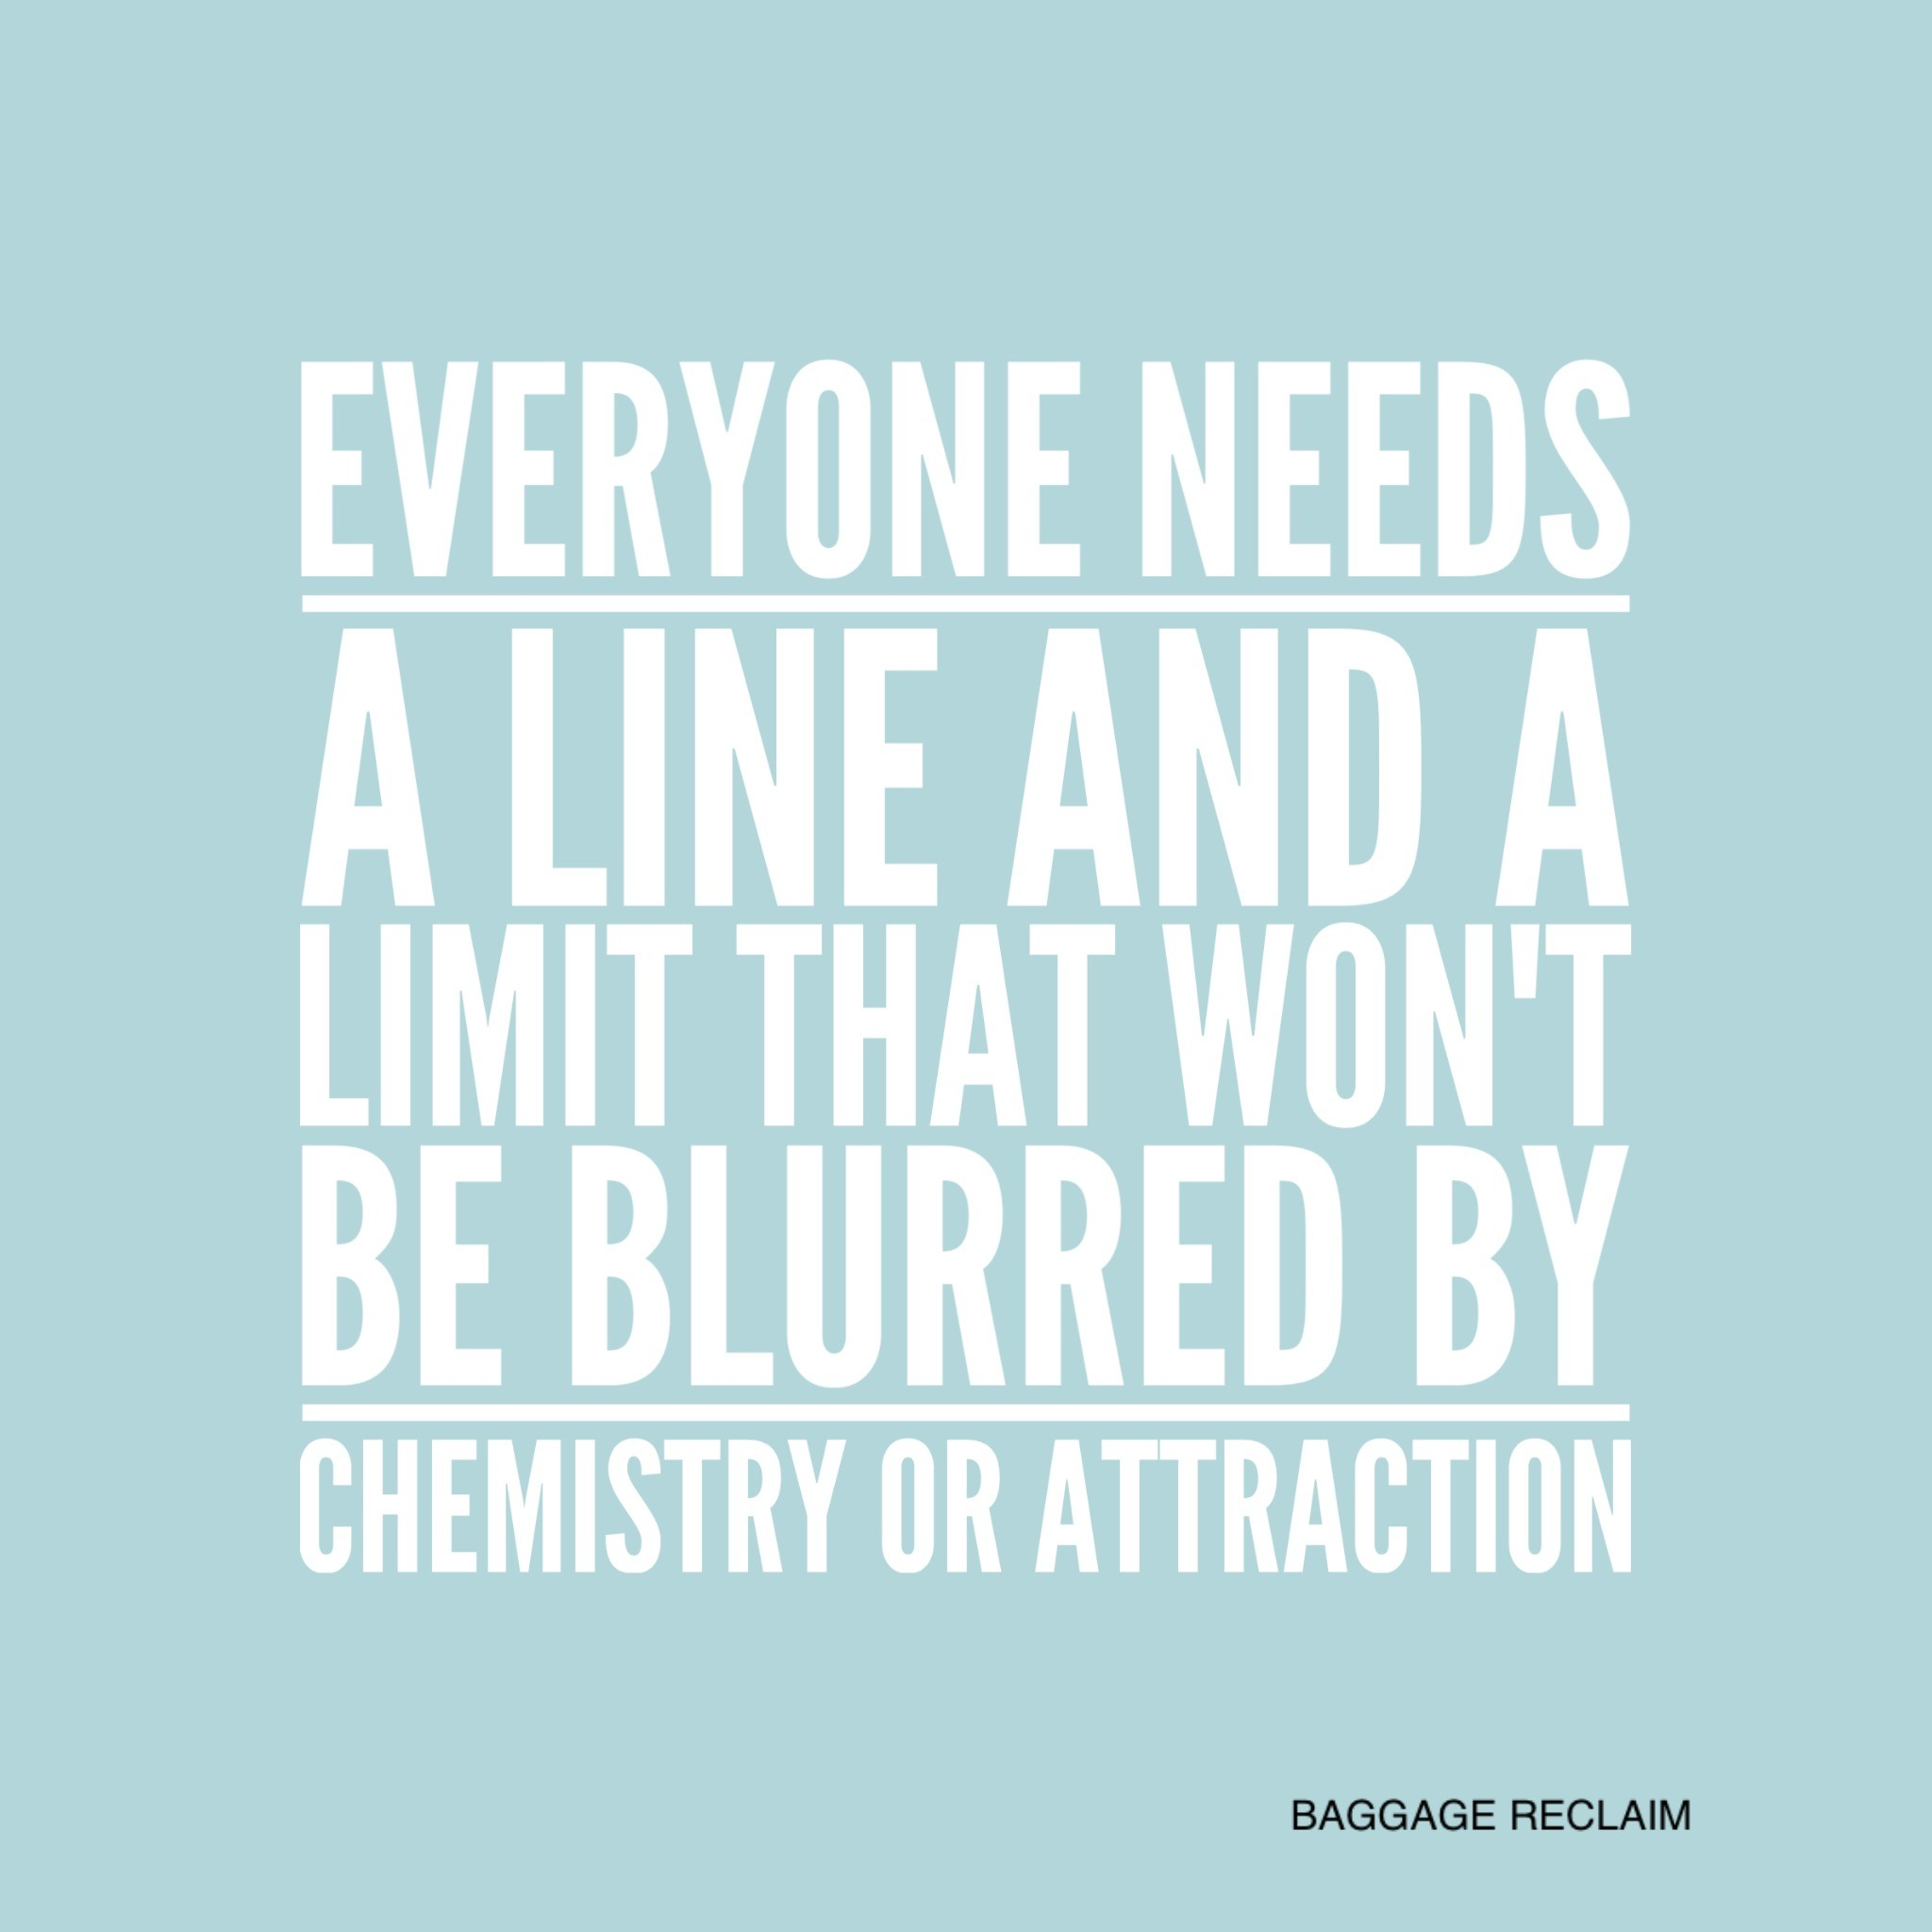 Everyone needs a line and a limit that won't be blurred by chemistry or attraction